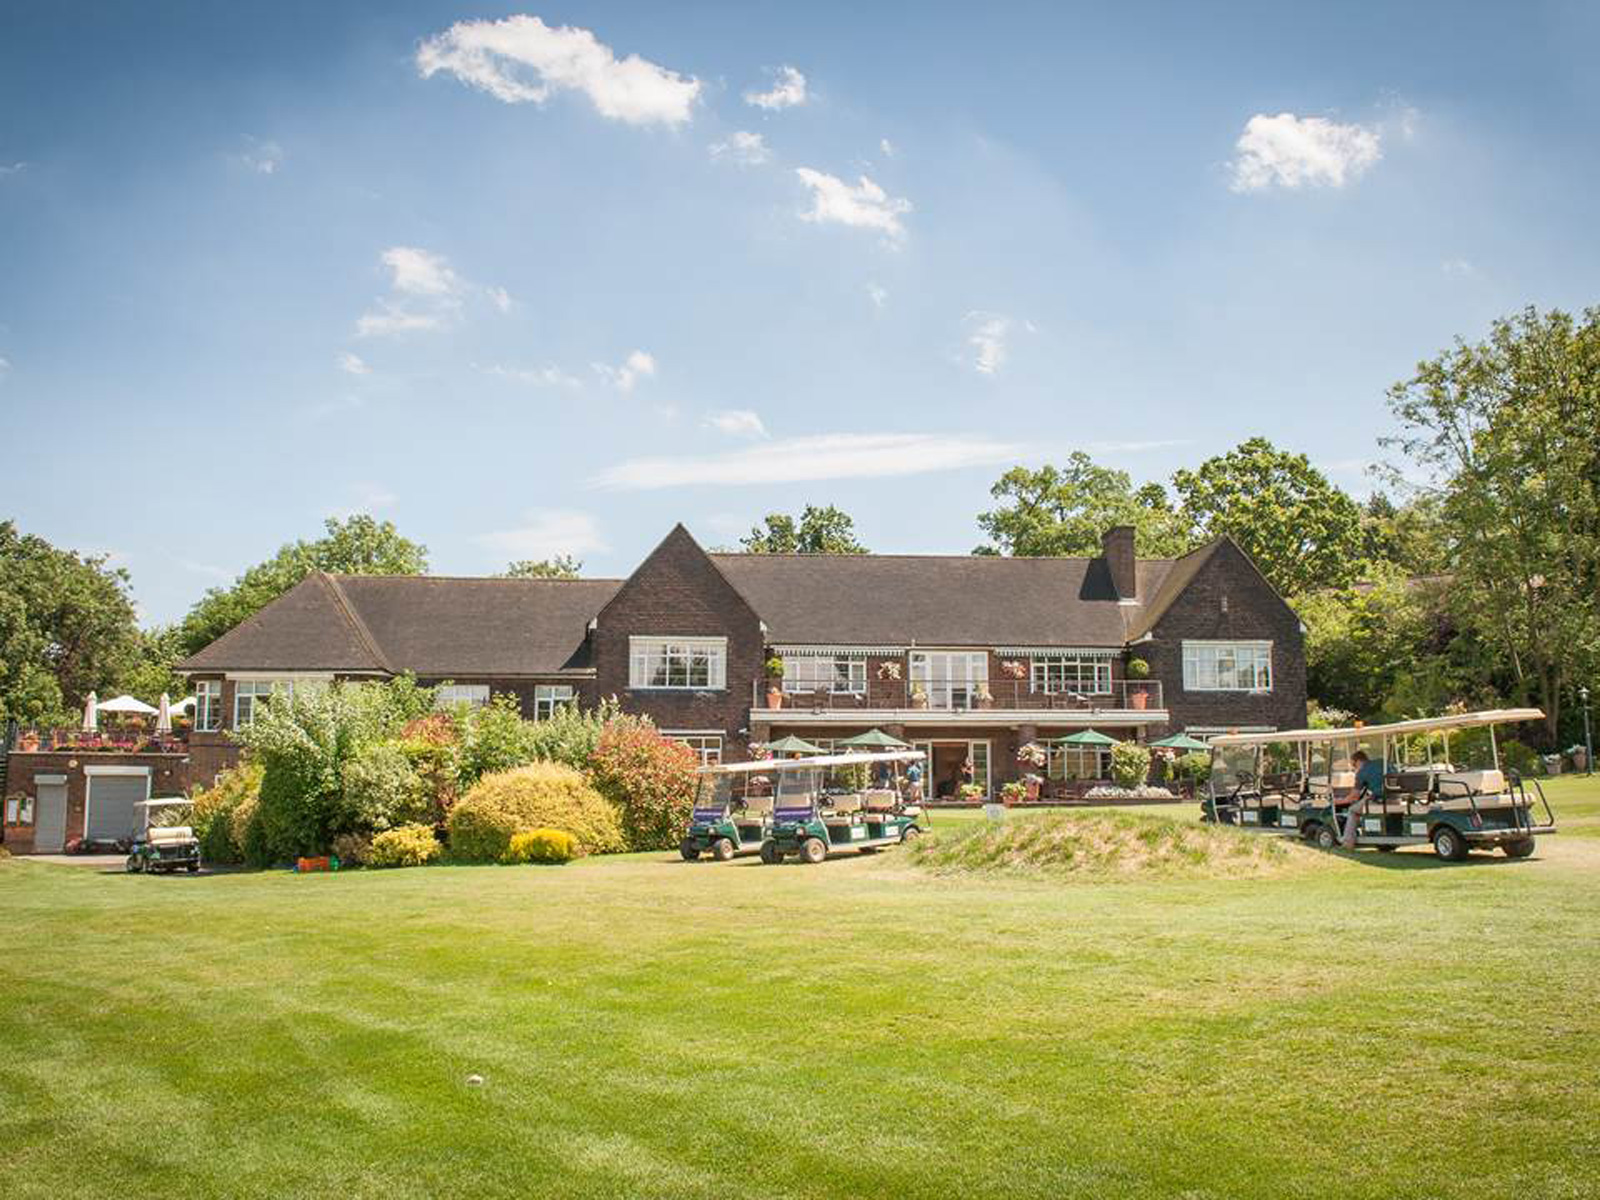 Wimbledon Park Golf Club is just half a mile away from Wimbledon and offers a great hospitality package for a full days experience